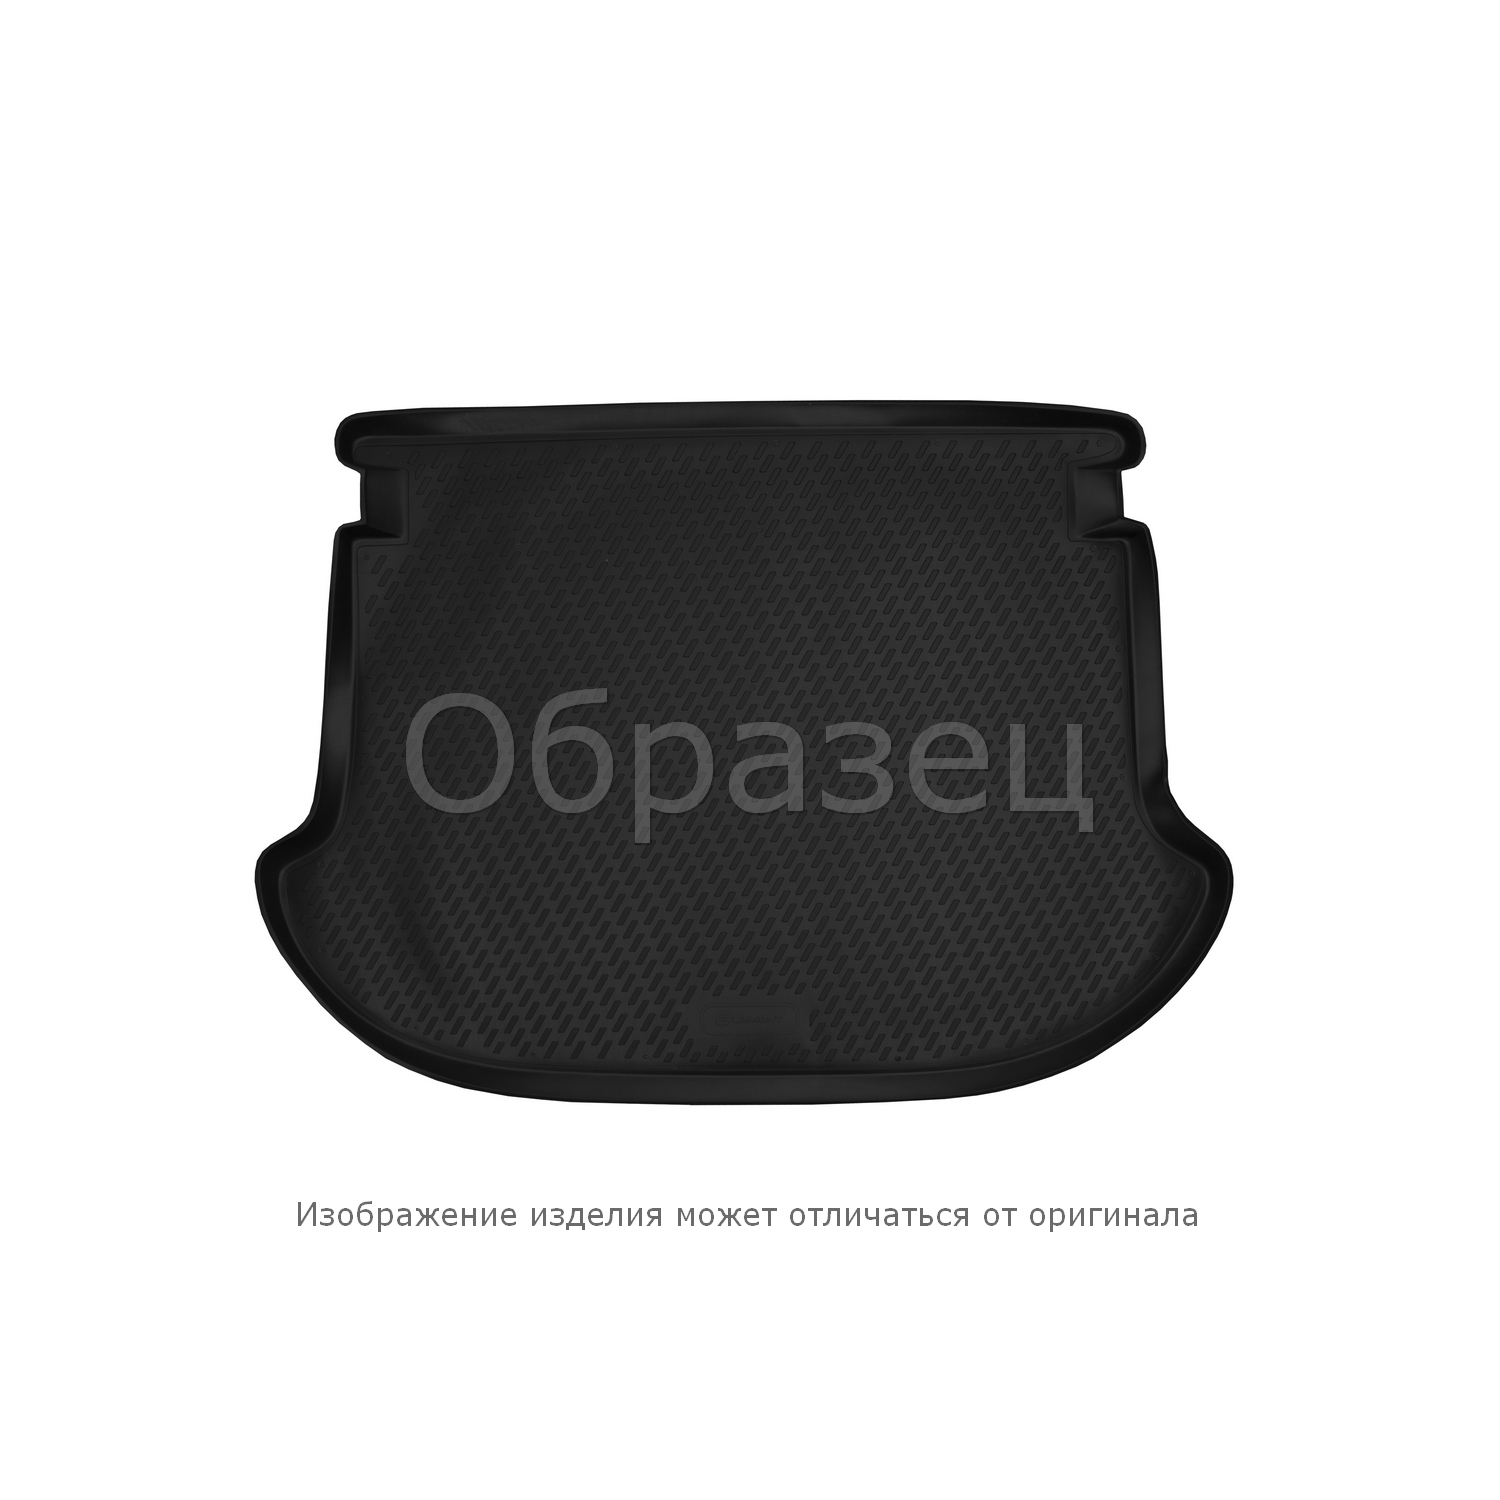 Trunk Mat For Fit For TOYOTA Camry (XV50), 2011-2017 2.5L/3.5L ETS. CARTYT00016